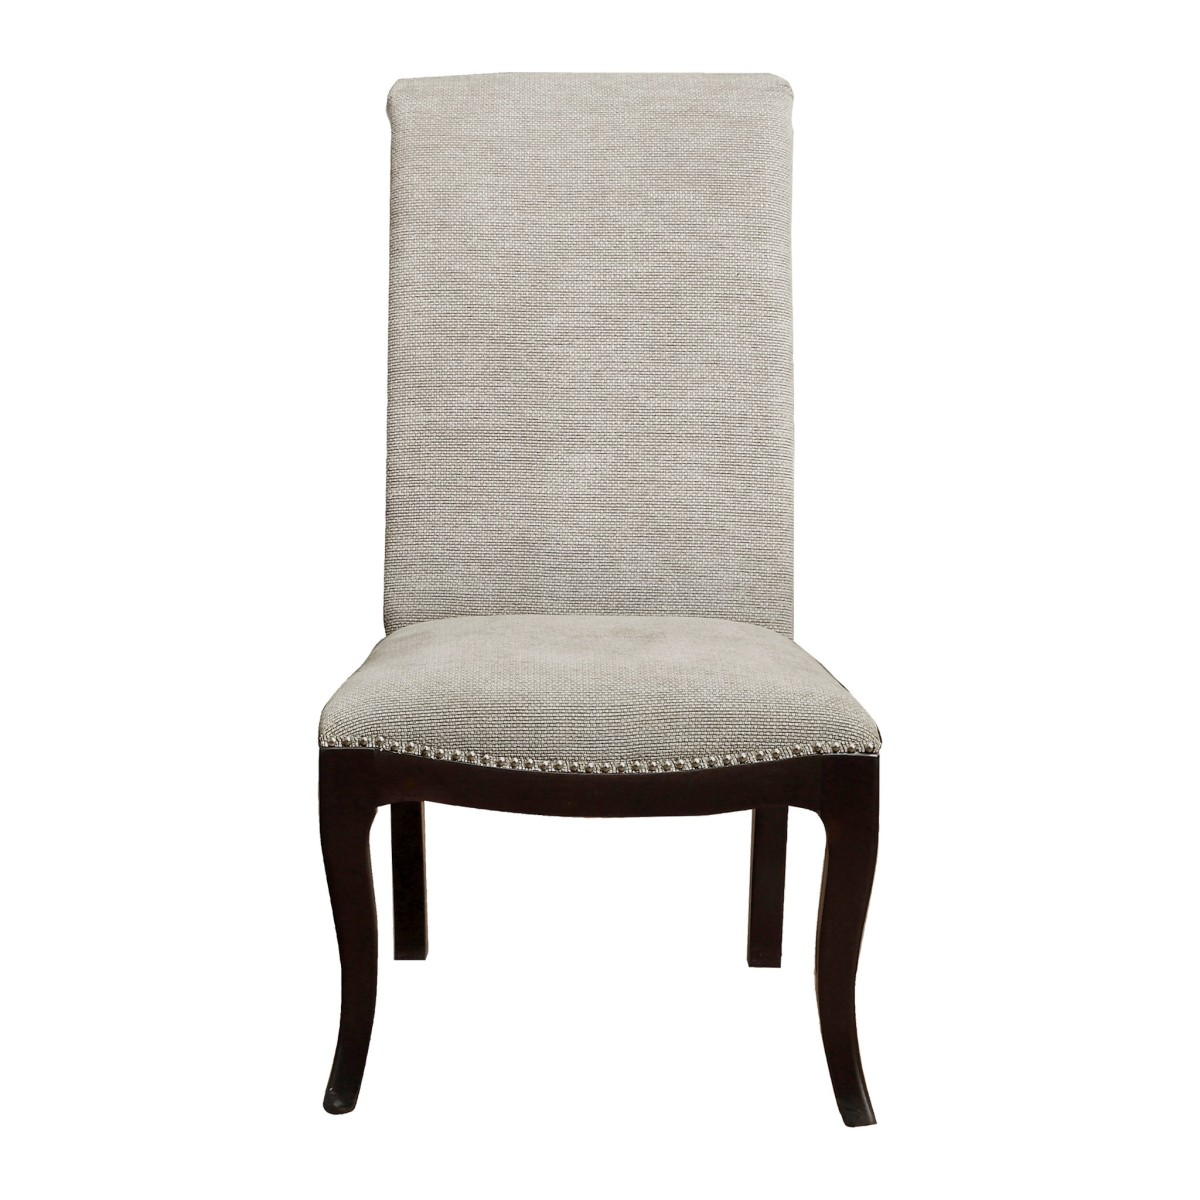 Homelegance 5494-S Darby home co Savion espresso finish wood dining chair with fabric upholstery